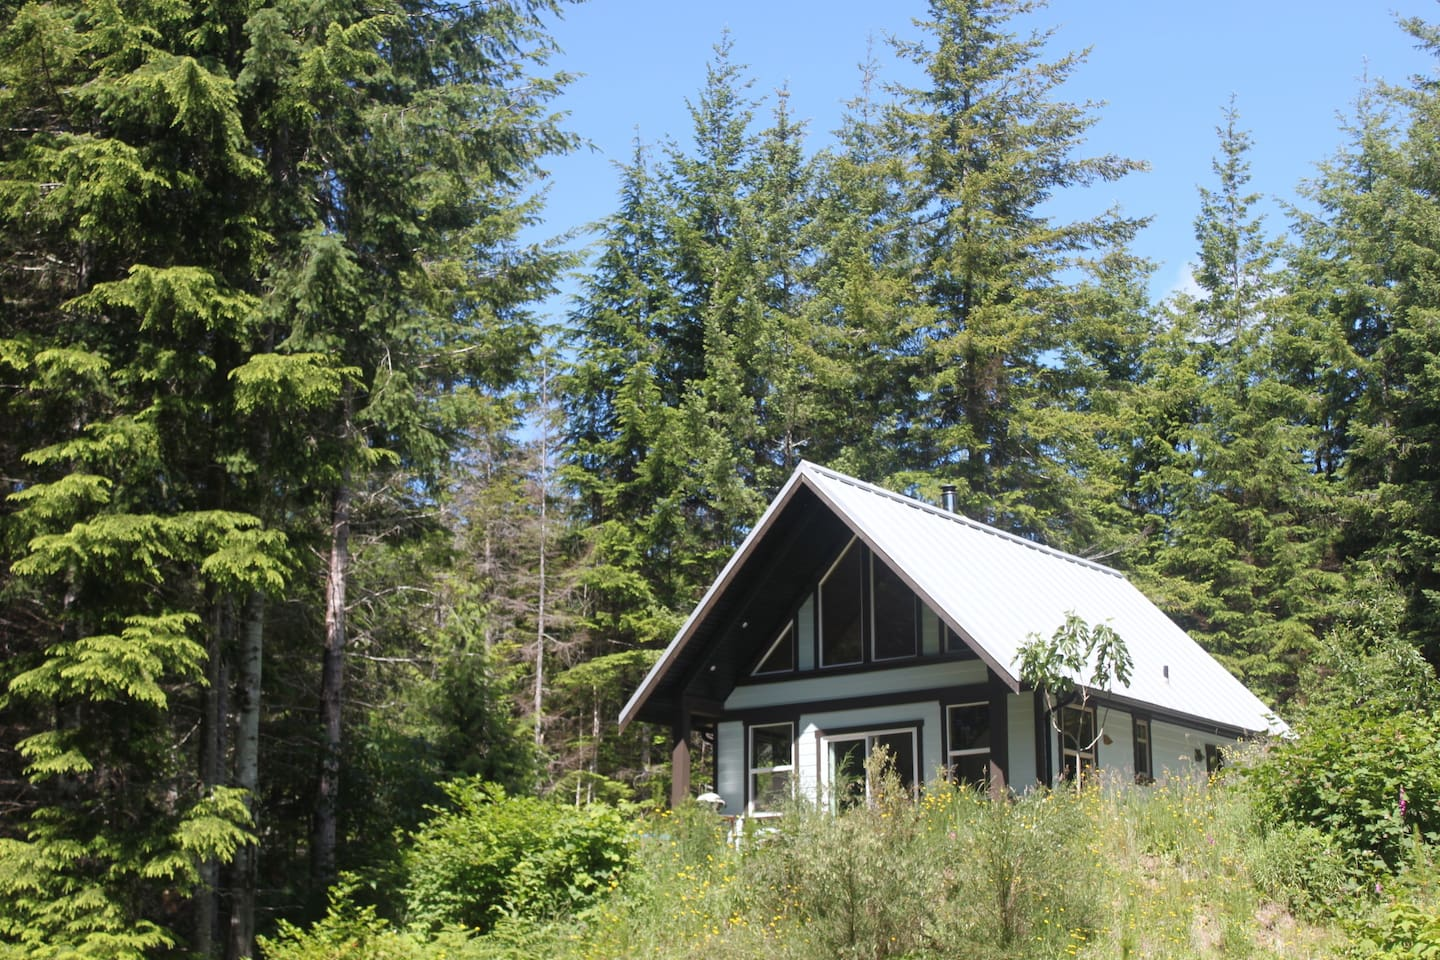 View of the cabin from below. Private and entirely embedded in the wilderness.